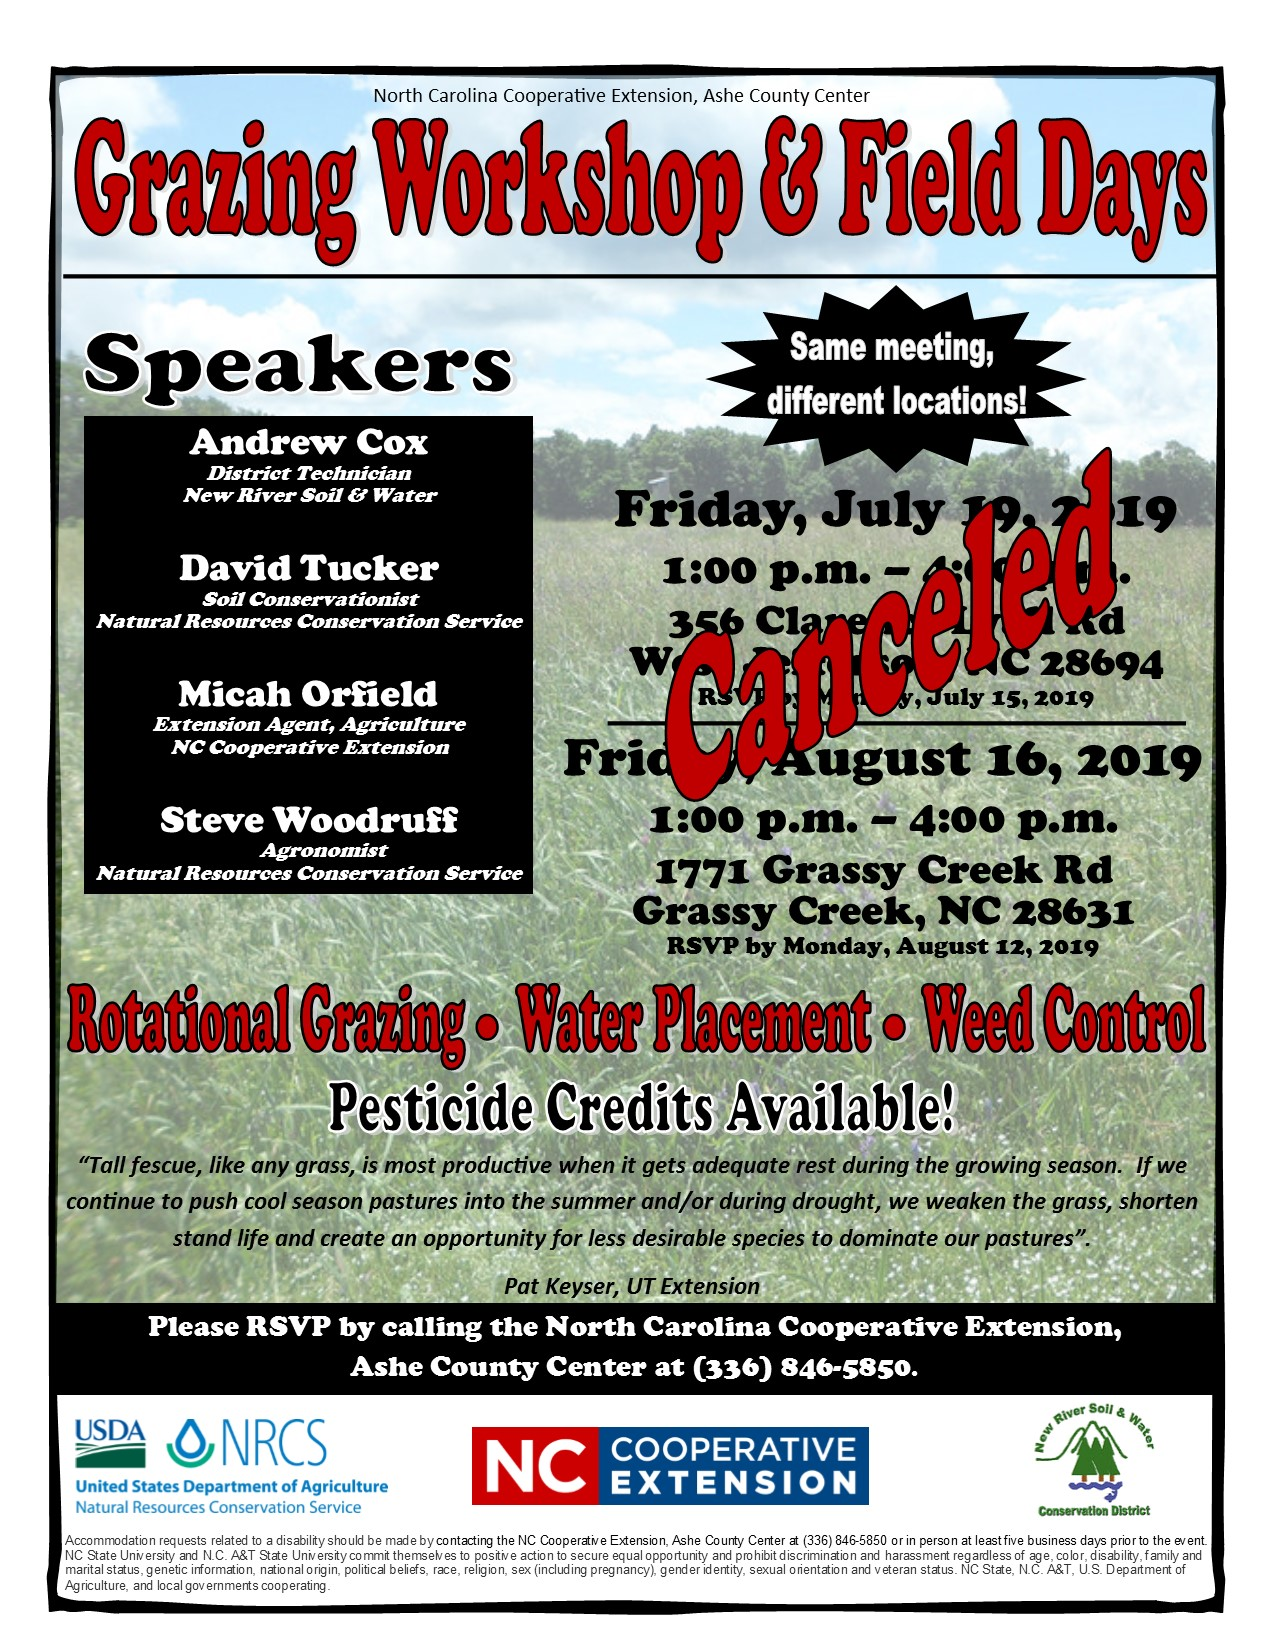 Grazing Workshop and Field Days poster